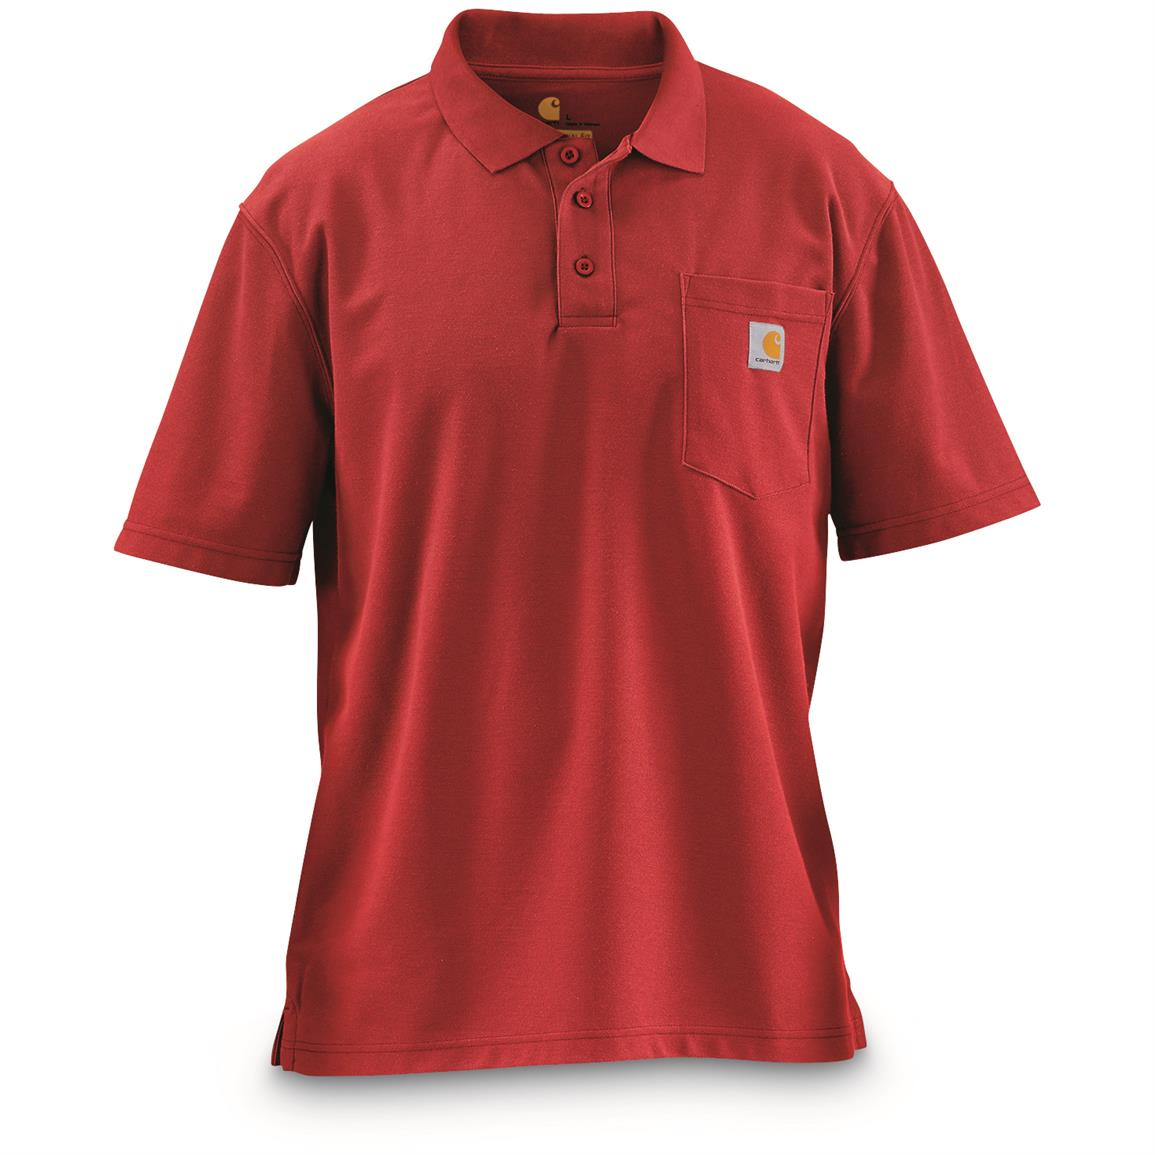 Carhartt Men's Contractor's Work Pocket Polo Shirt, Red